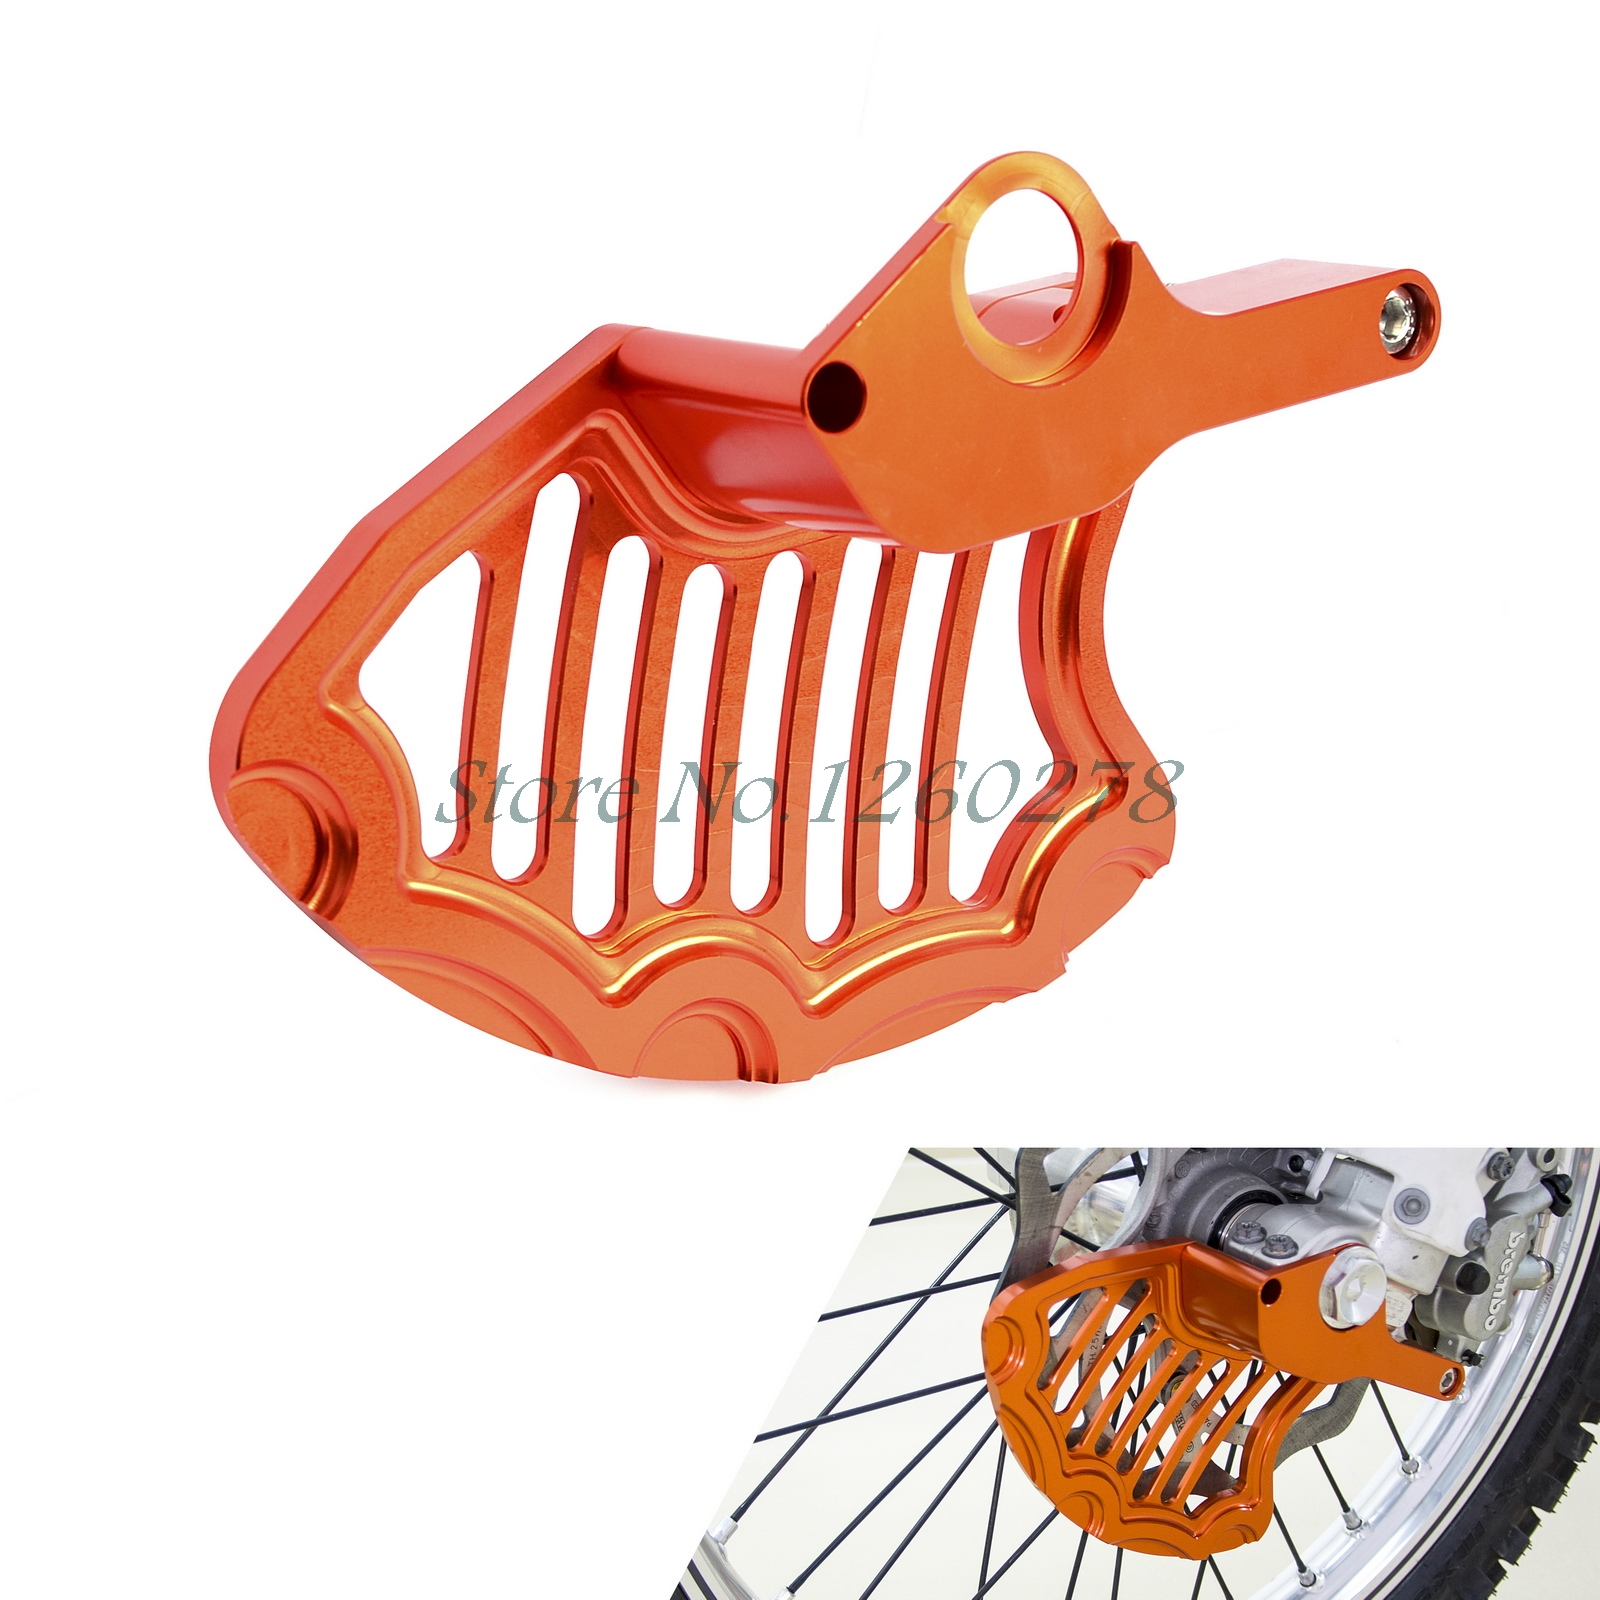 Motorcycle Brake Disc Rotor Guard For KTM 125 200 250 300 350 450 SX/XC/SX-F/XC-F 2015-2018 250-500 XCW EXC XCFW 2016-2018 motorcycle front rider seat leather cover for ktm 125 200 390 duke